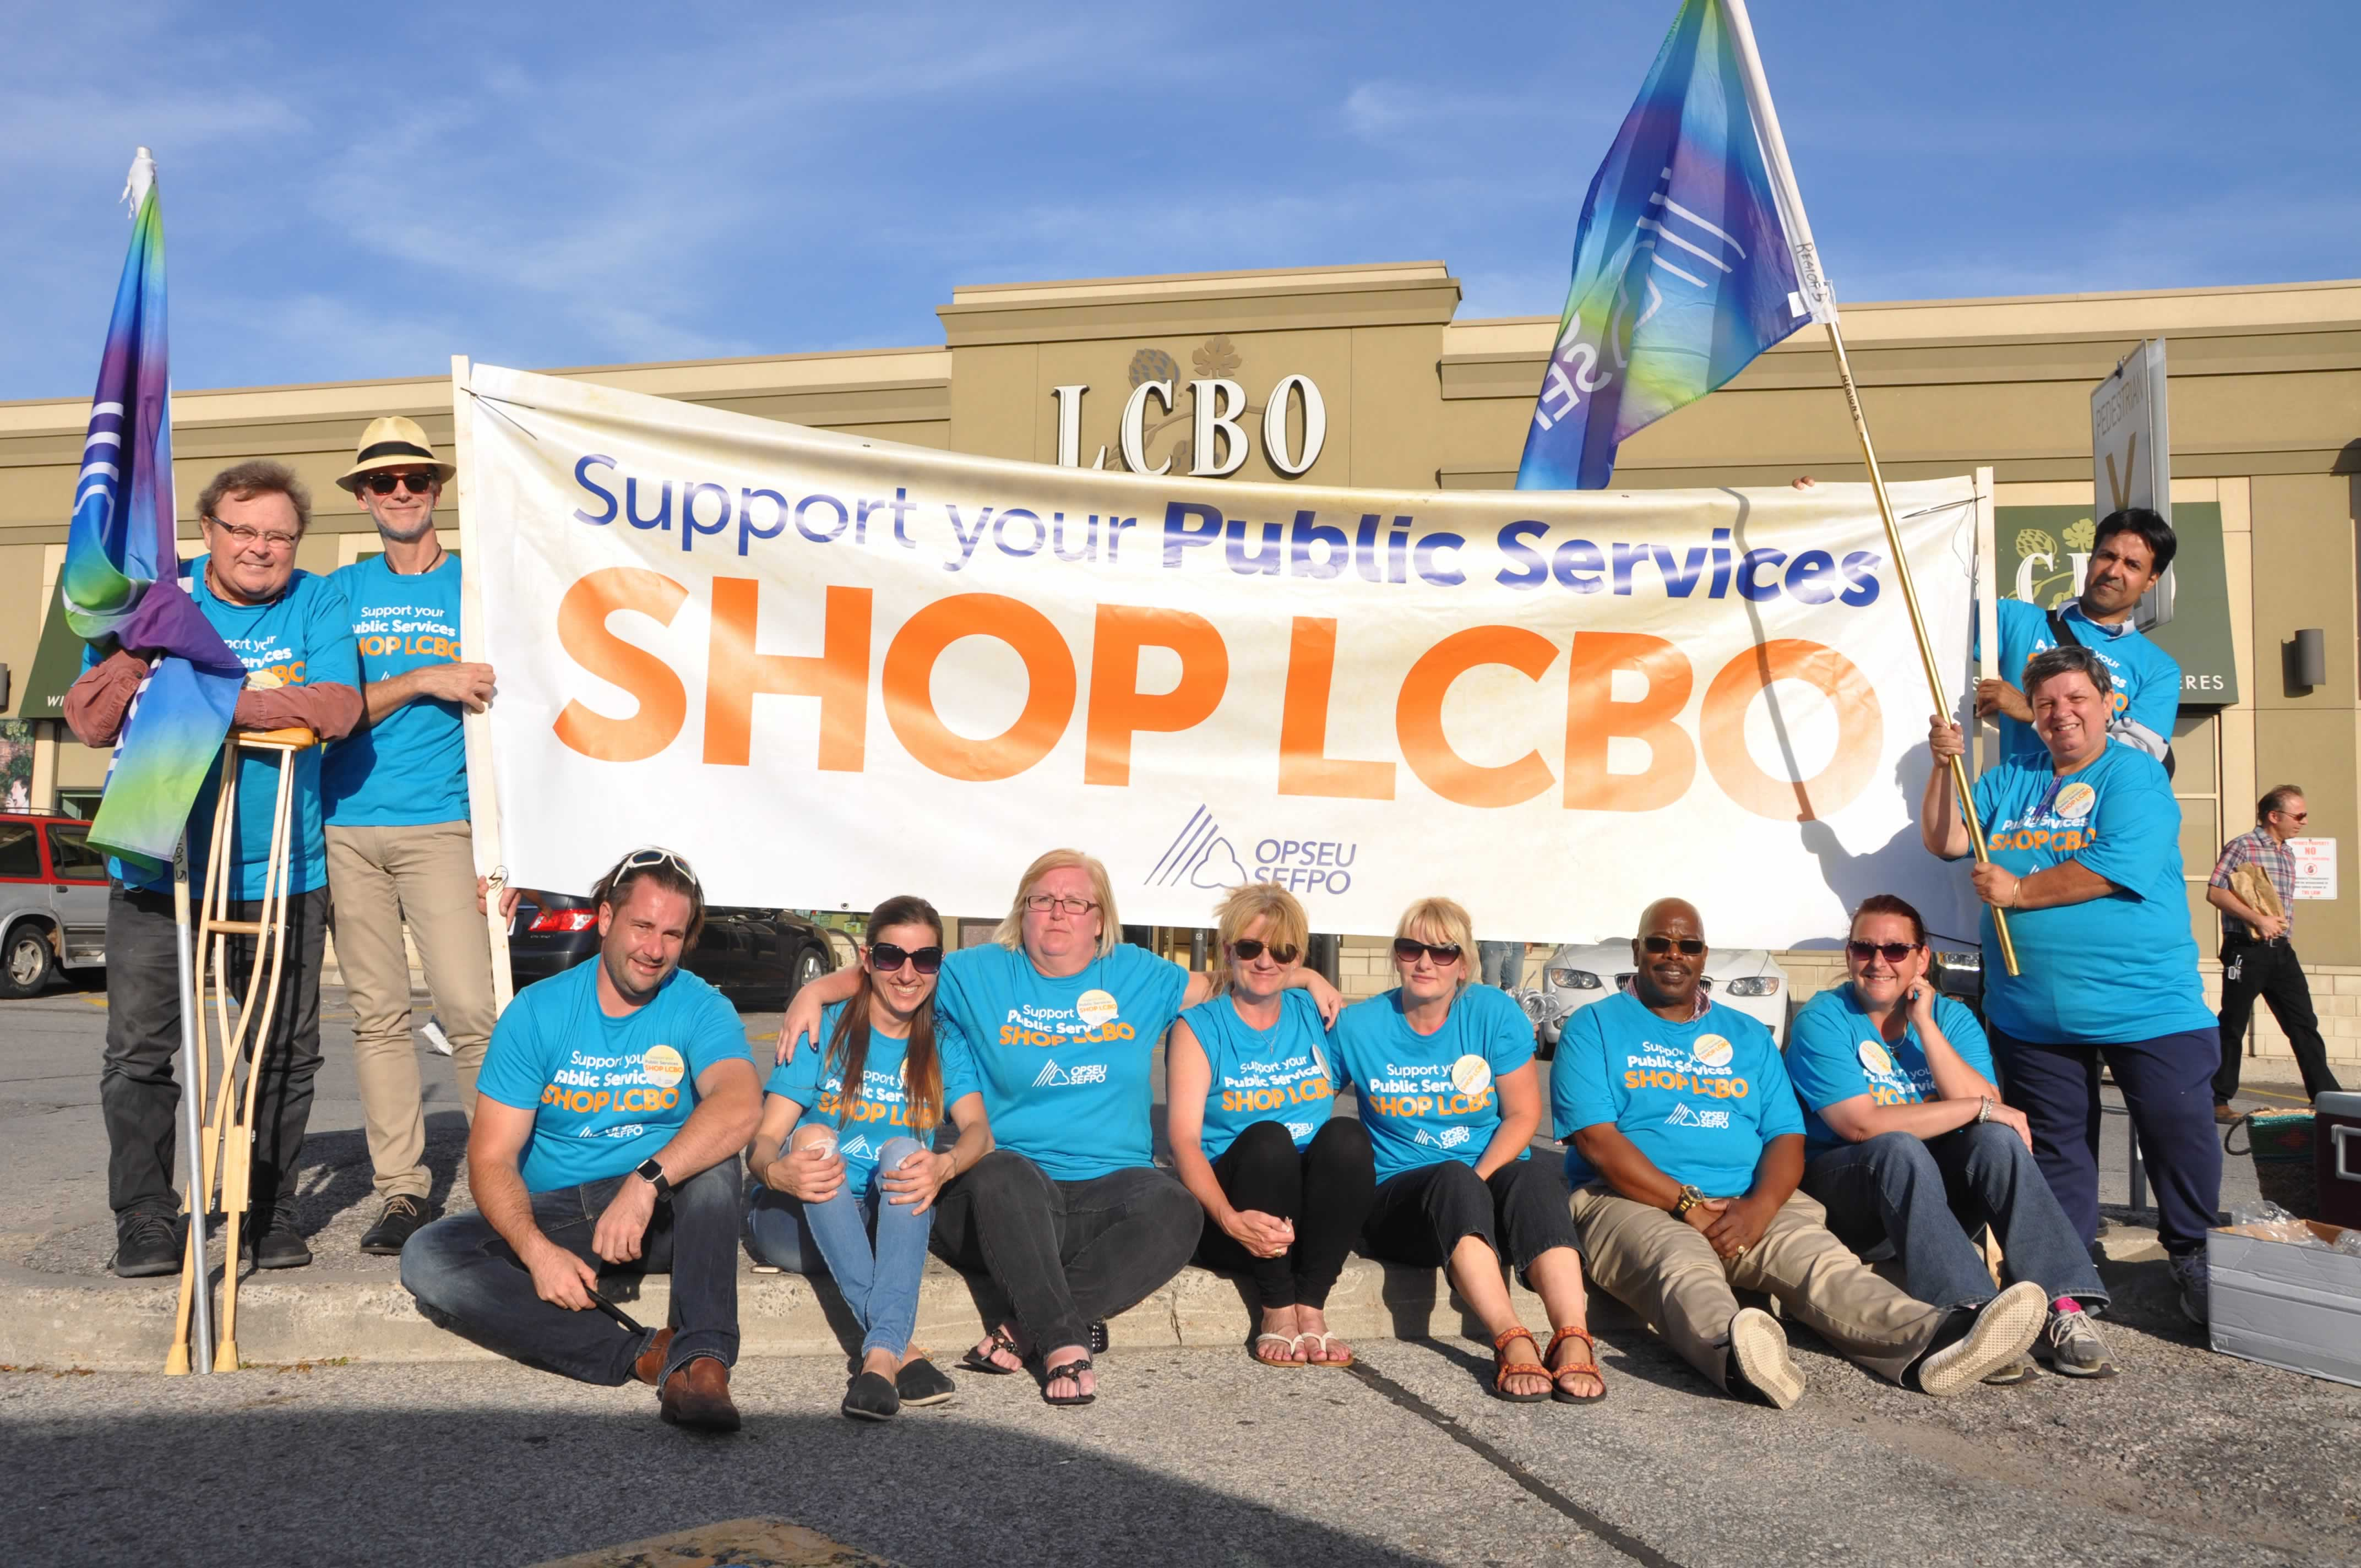 """Group of OPSEU members wearing blue shorts with a large banner that says """"Support your Public Services: Shop LCBO"""""""